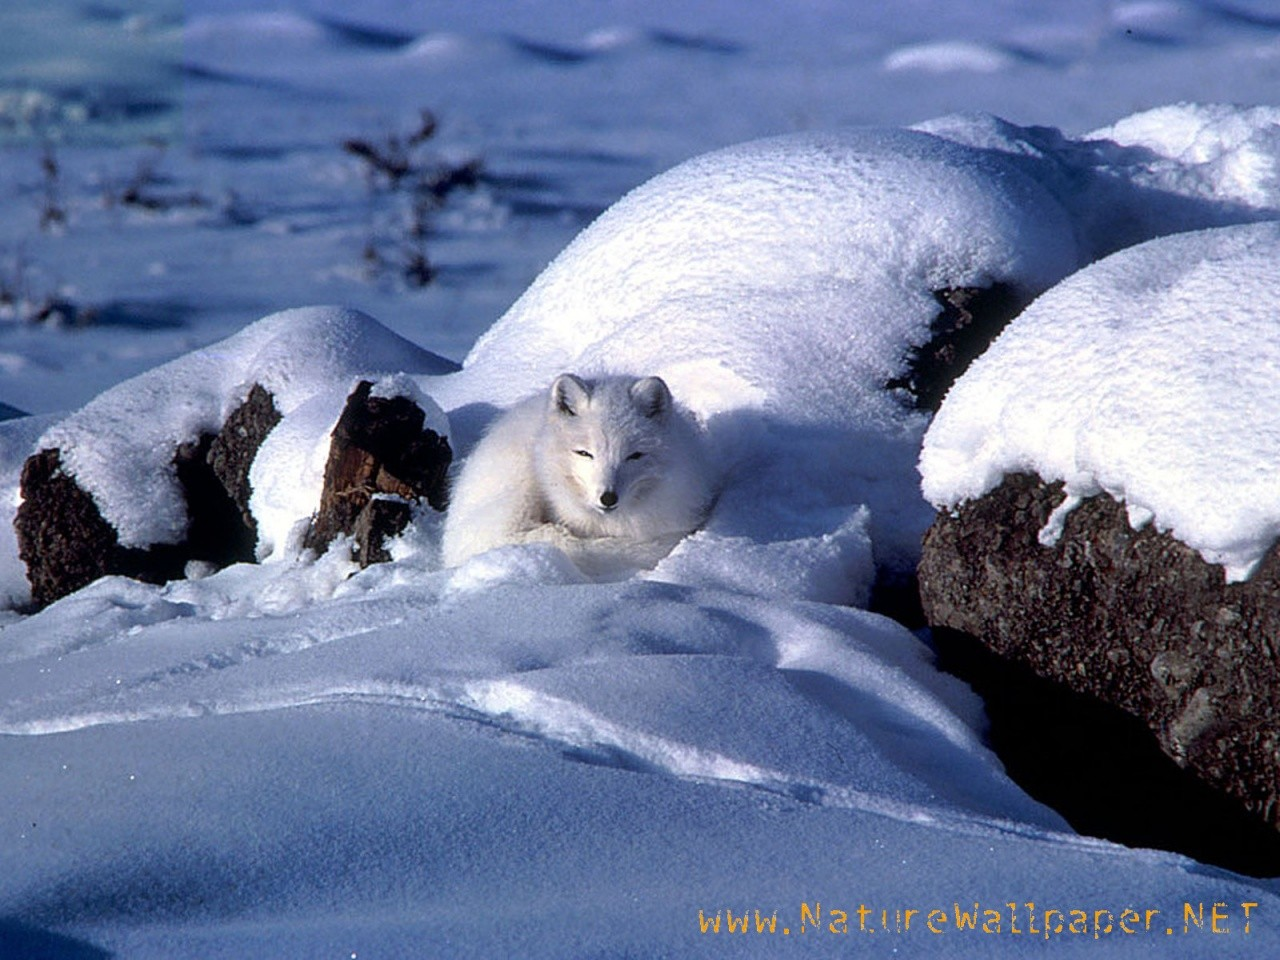 http://2.bp.blogspot.com/-WYIhRoY9JN0/Tv8p4tcqFFI/AAAAAAAACFA/iosExgmgSxc/s1600/Arctic-fox-animal-wallpaper.jpg